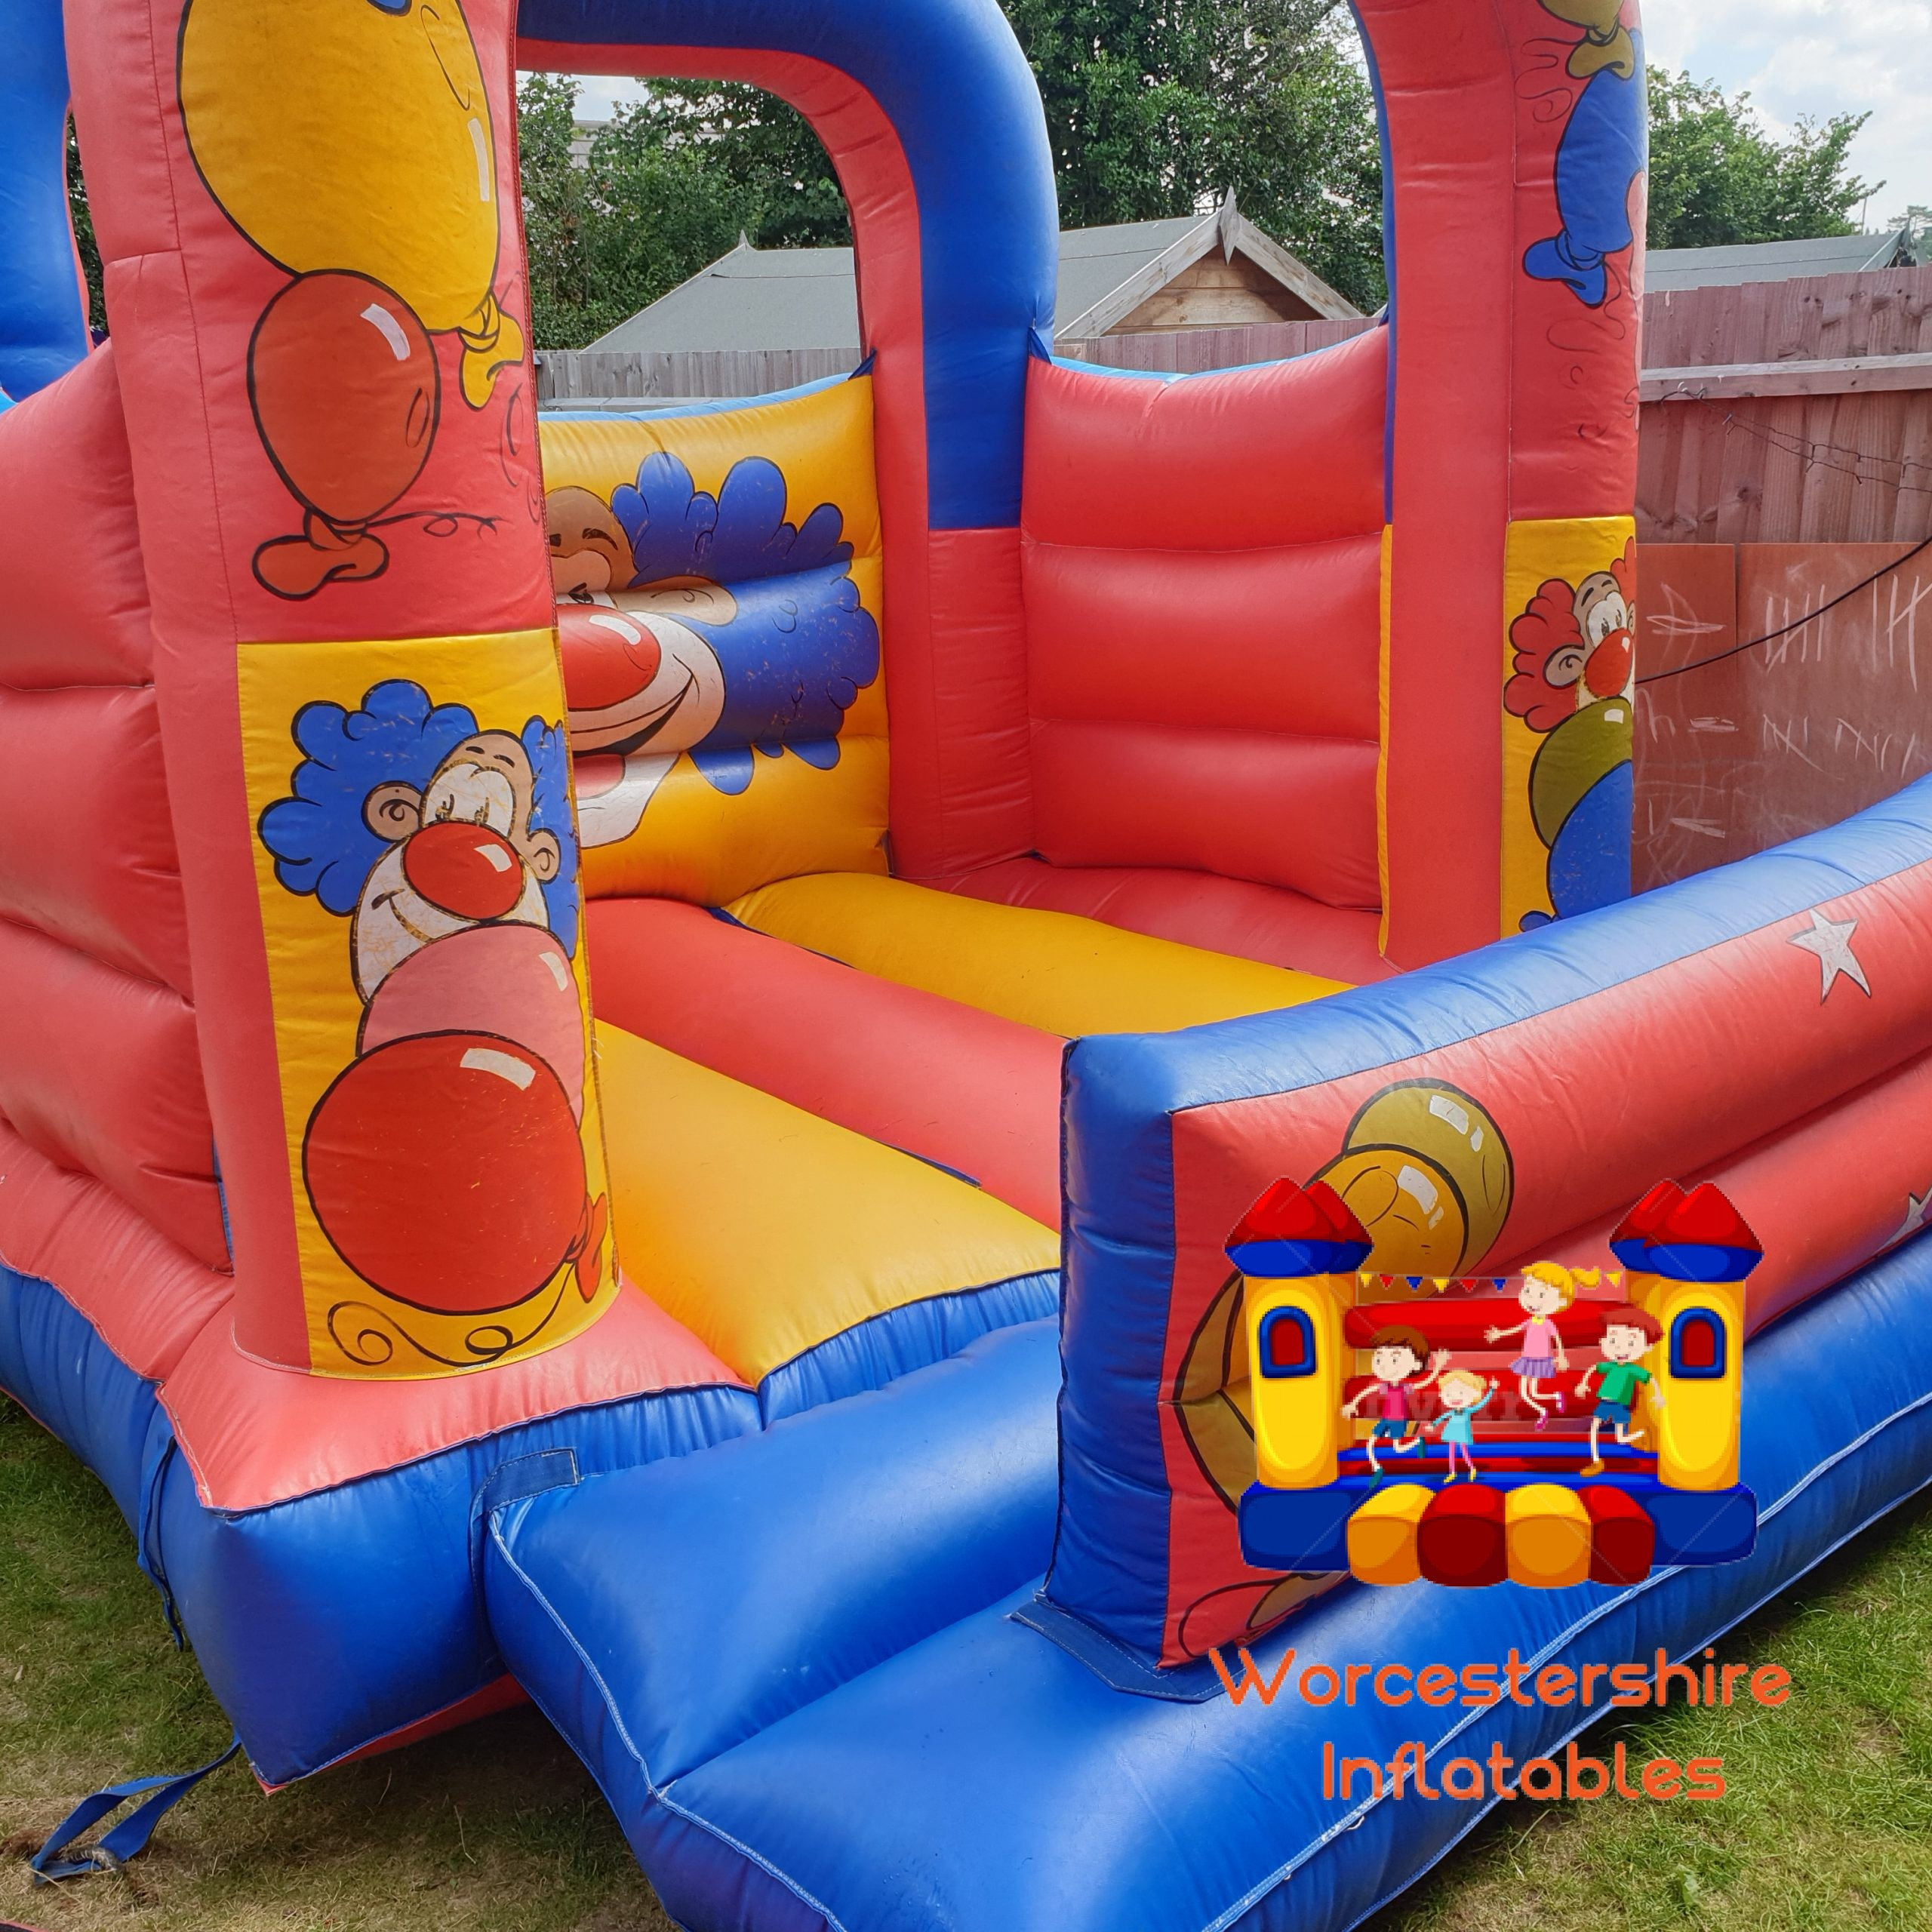 small garden castle - Worcestershire Inflatables